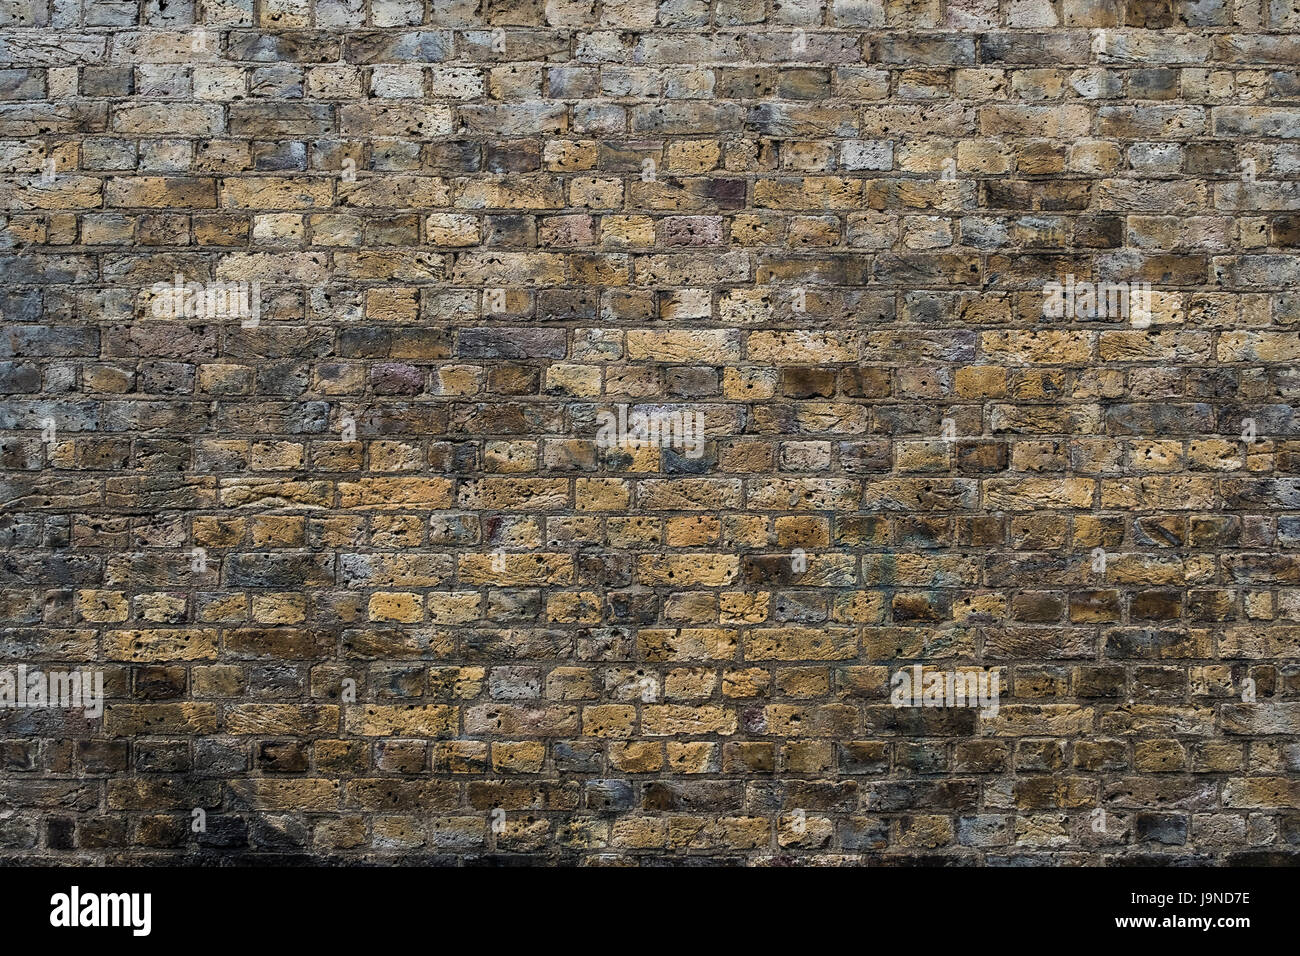 London clay brick background / wallpaper - Stock Image